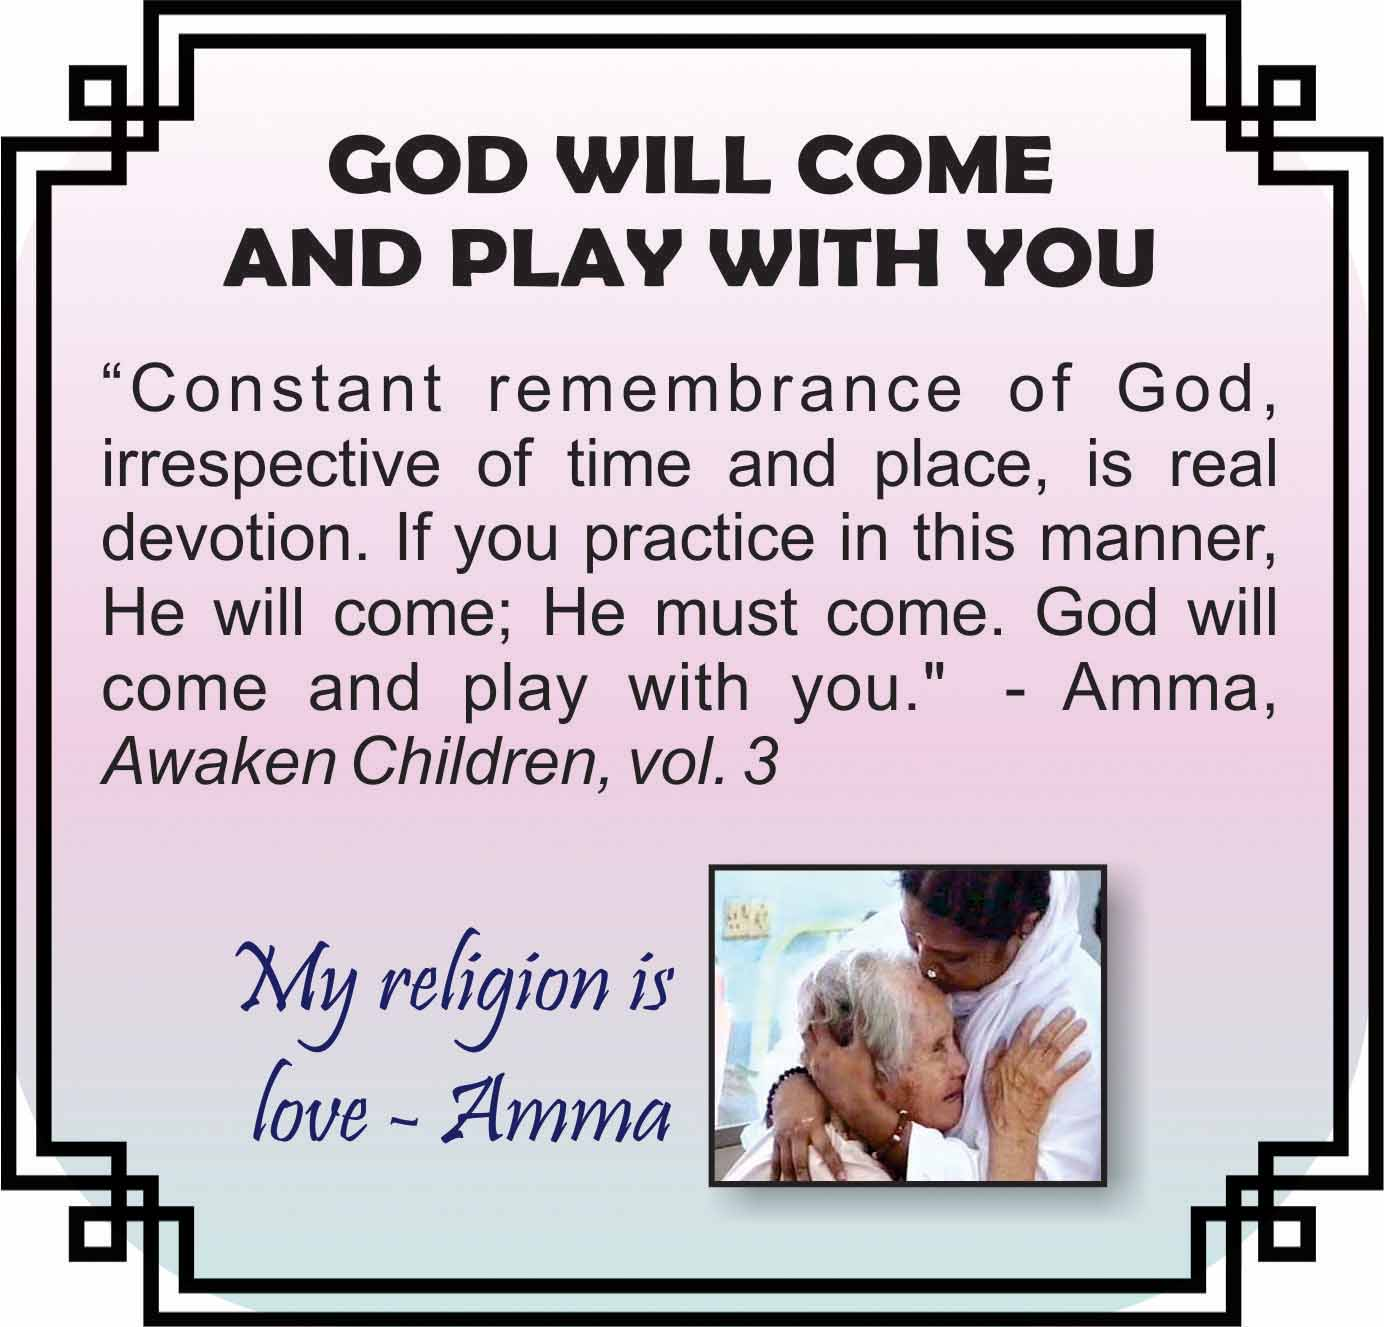 God will play with you